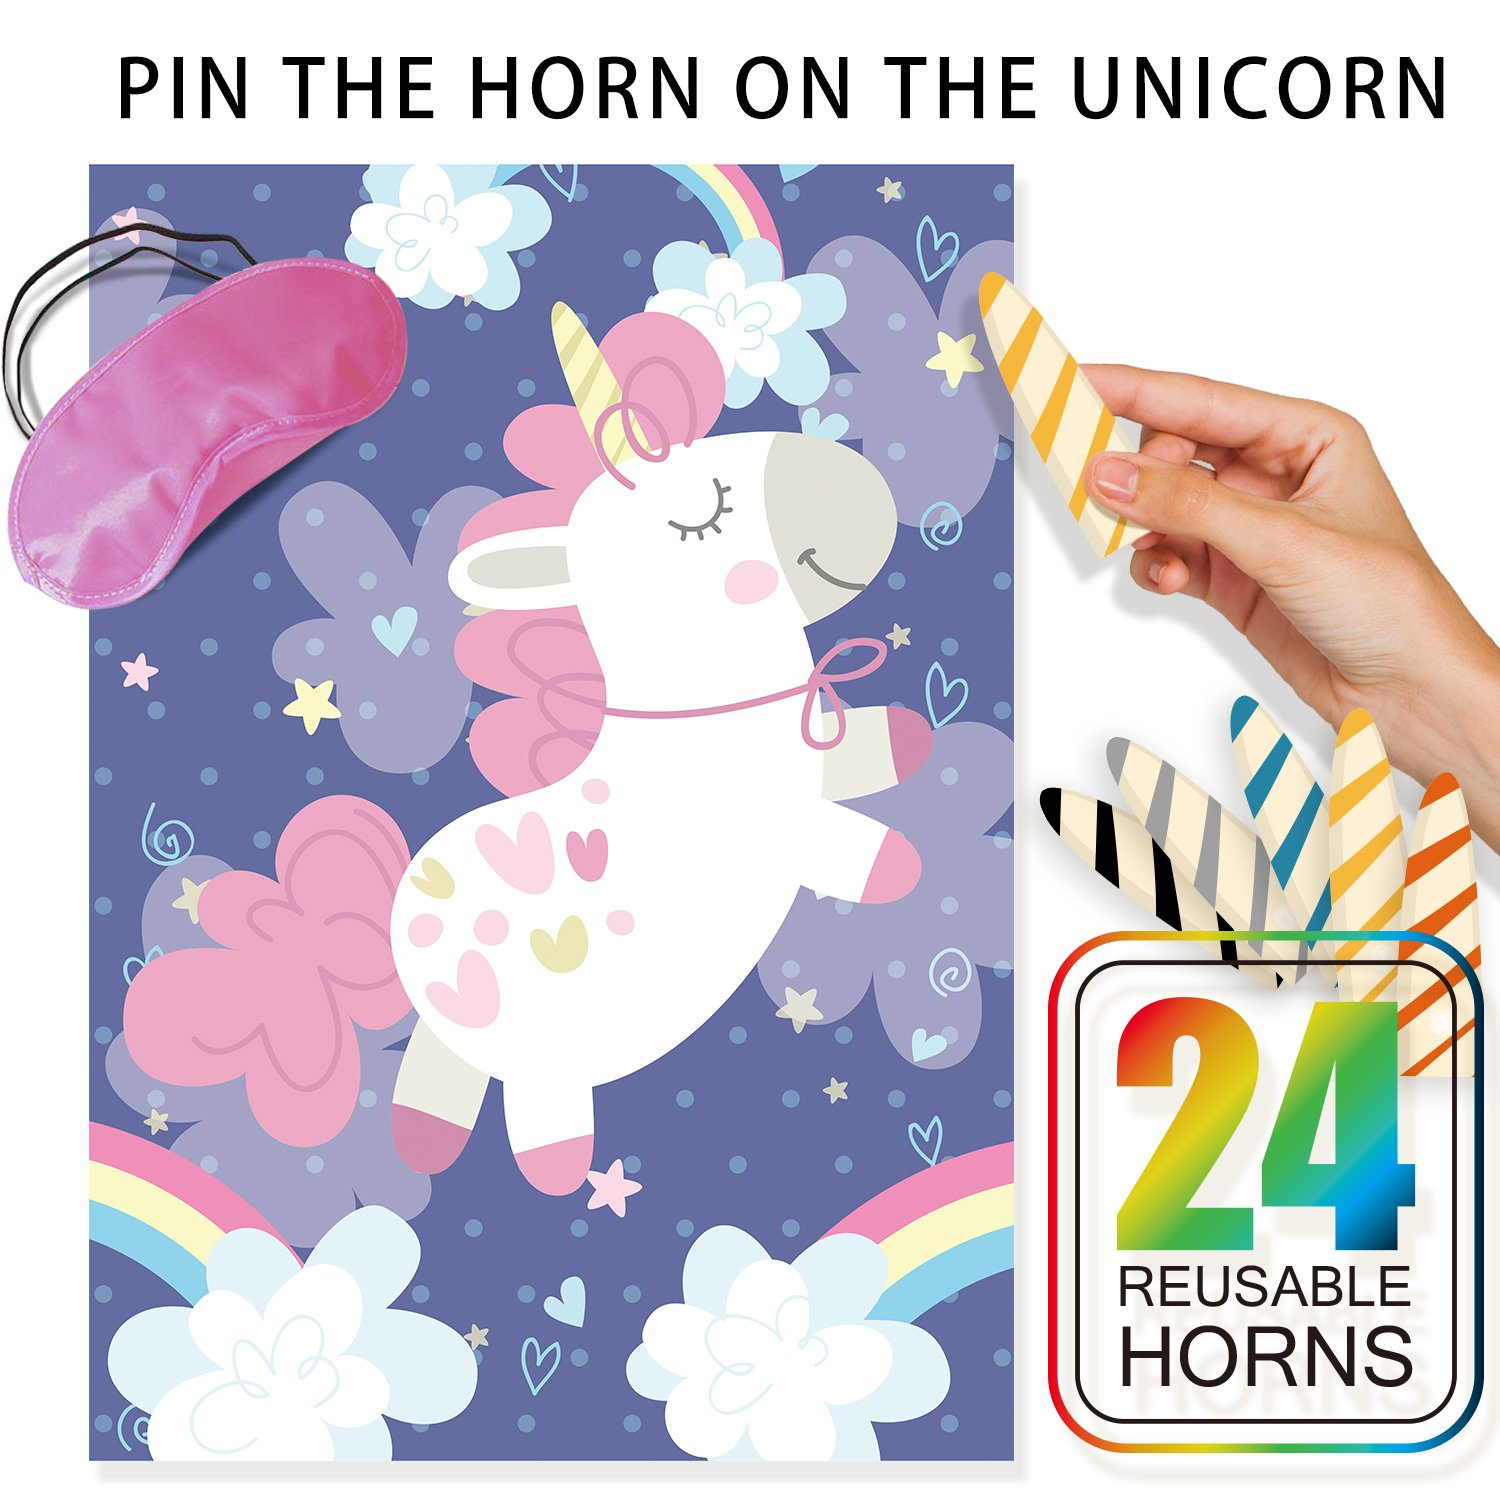 Pin The Horn On The Unicorn Party Game for Unicorn Themed Activities Set,24 Reusable Horns,Fabric Unicorn Poster,Blindfold Mask,Magical Rainbow Party Supplies,Fun Birthday Party Favors for Kids/Girls